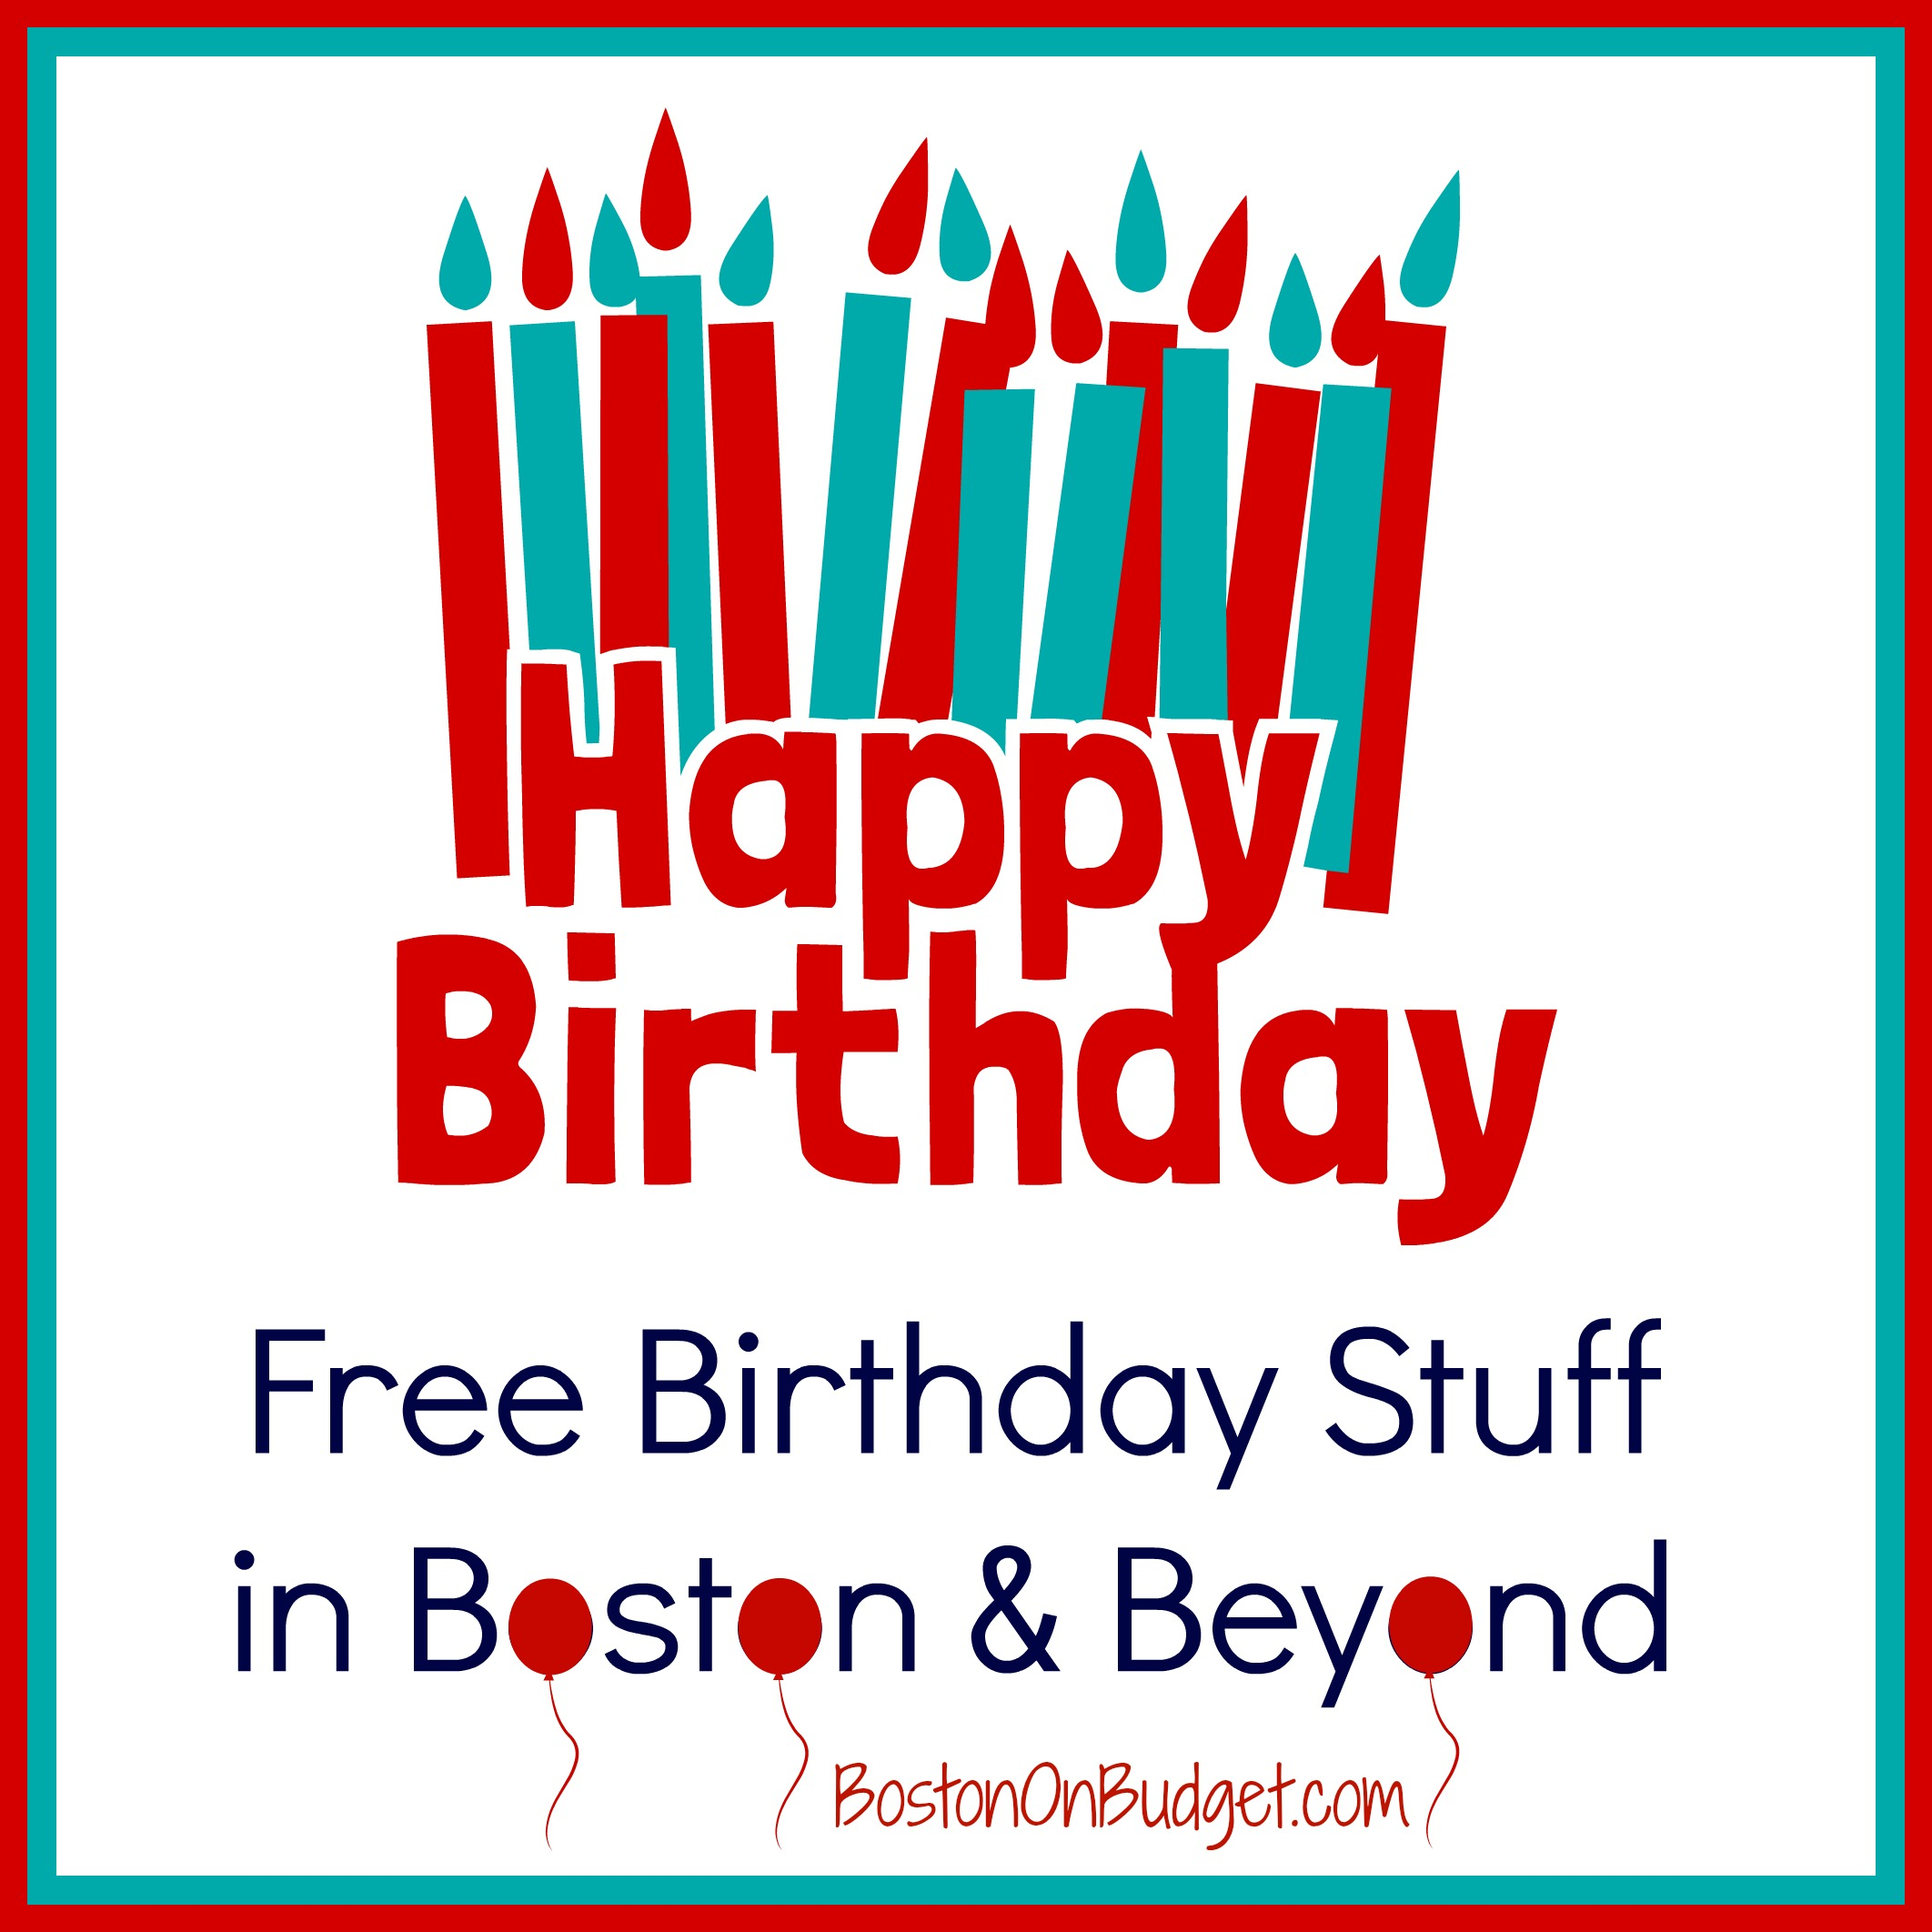 sign up for free birthday stuff ; Birthday-Freebies-Boston